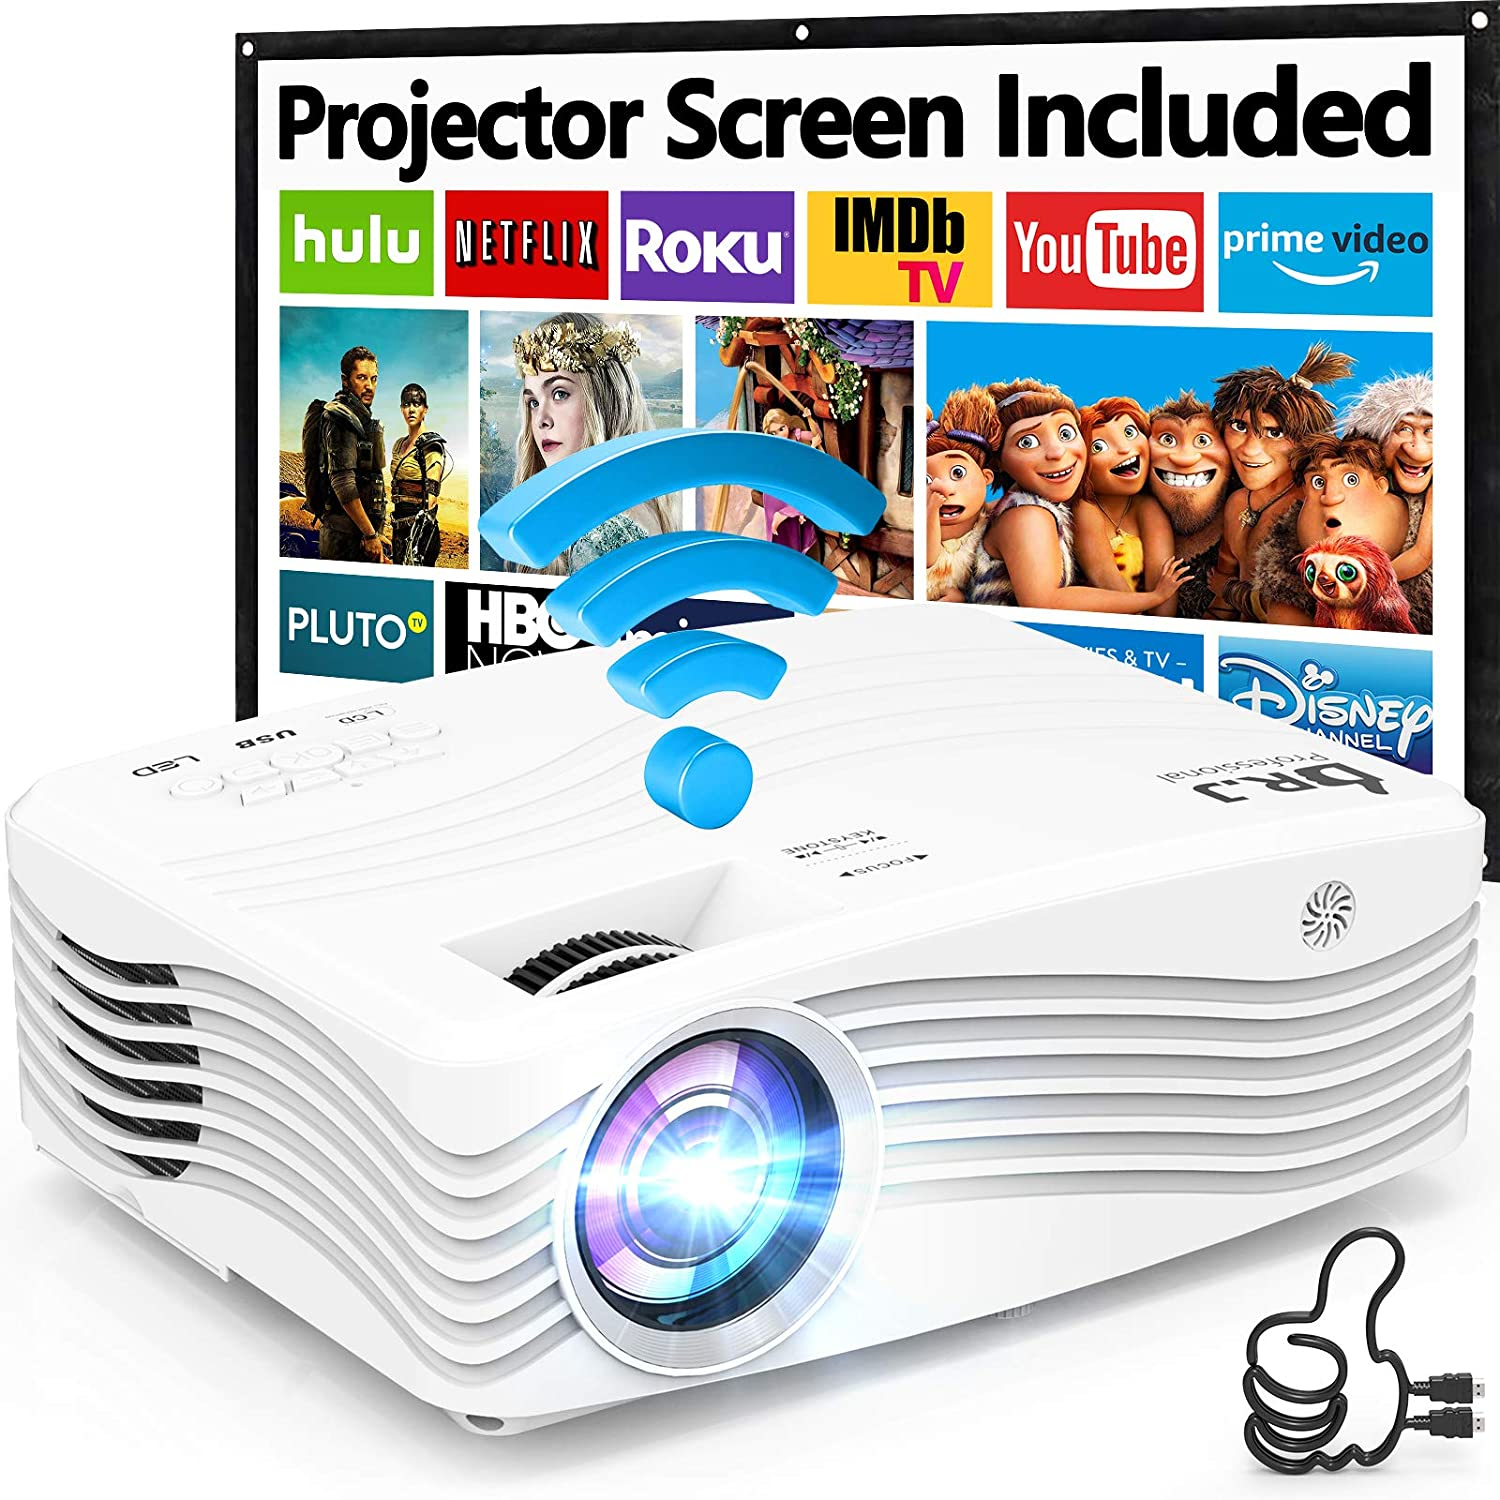 7500Lumens Upgraded Native 1080P Projector, Full HD WiFi Projector Synchronize Smartphone Screen, Compatible with TV Stick/HDMI/PS4/DVD Player/AV for Outdoor Movies [Packed with 120